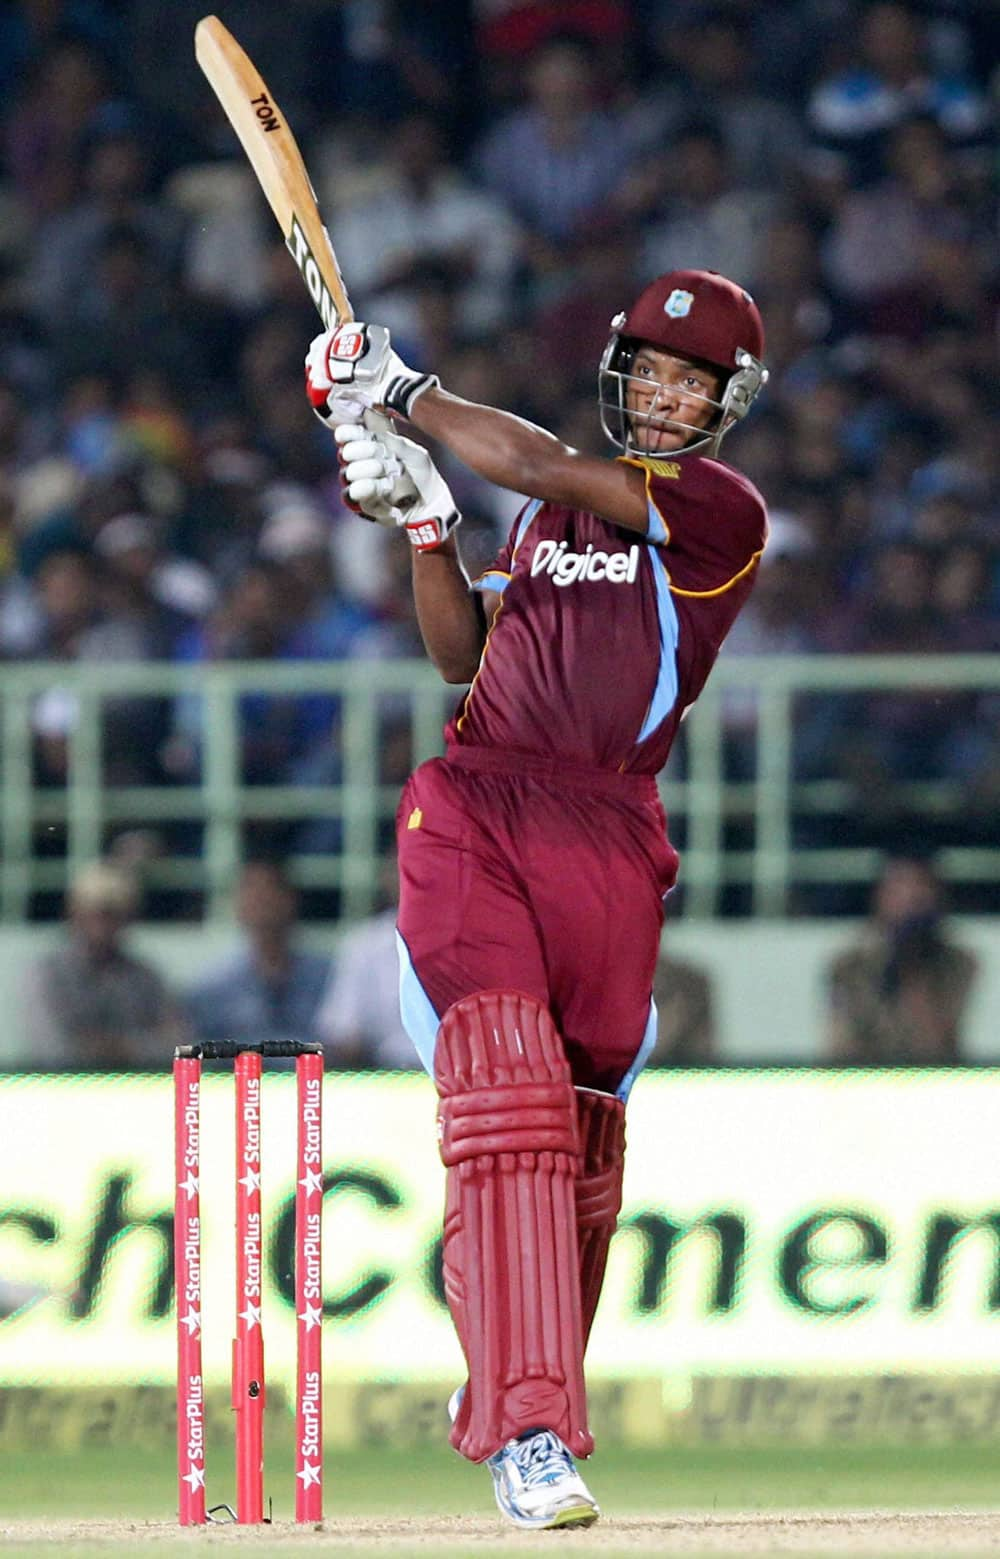 West Indies Cricketer K Powell plays a shot during India vs West Indies 2nd ODI Match in Visakhapatnam.